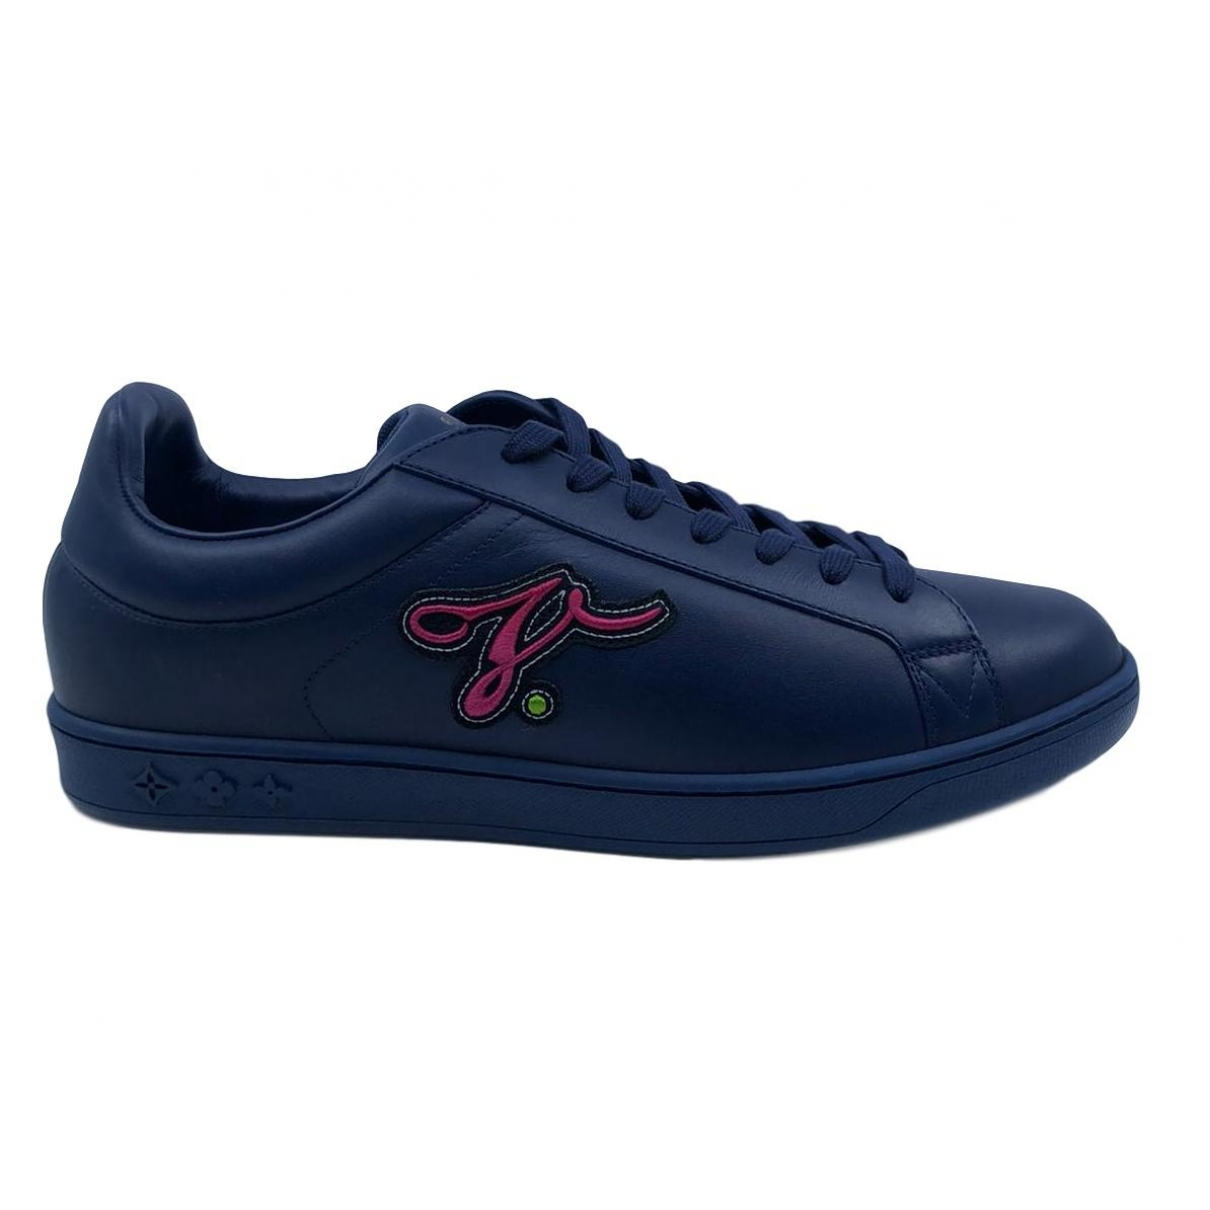 Louis Vuitton \N Navy Leather Trainers for Men 9 UK